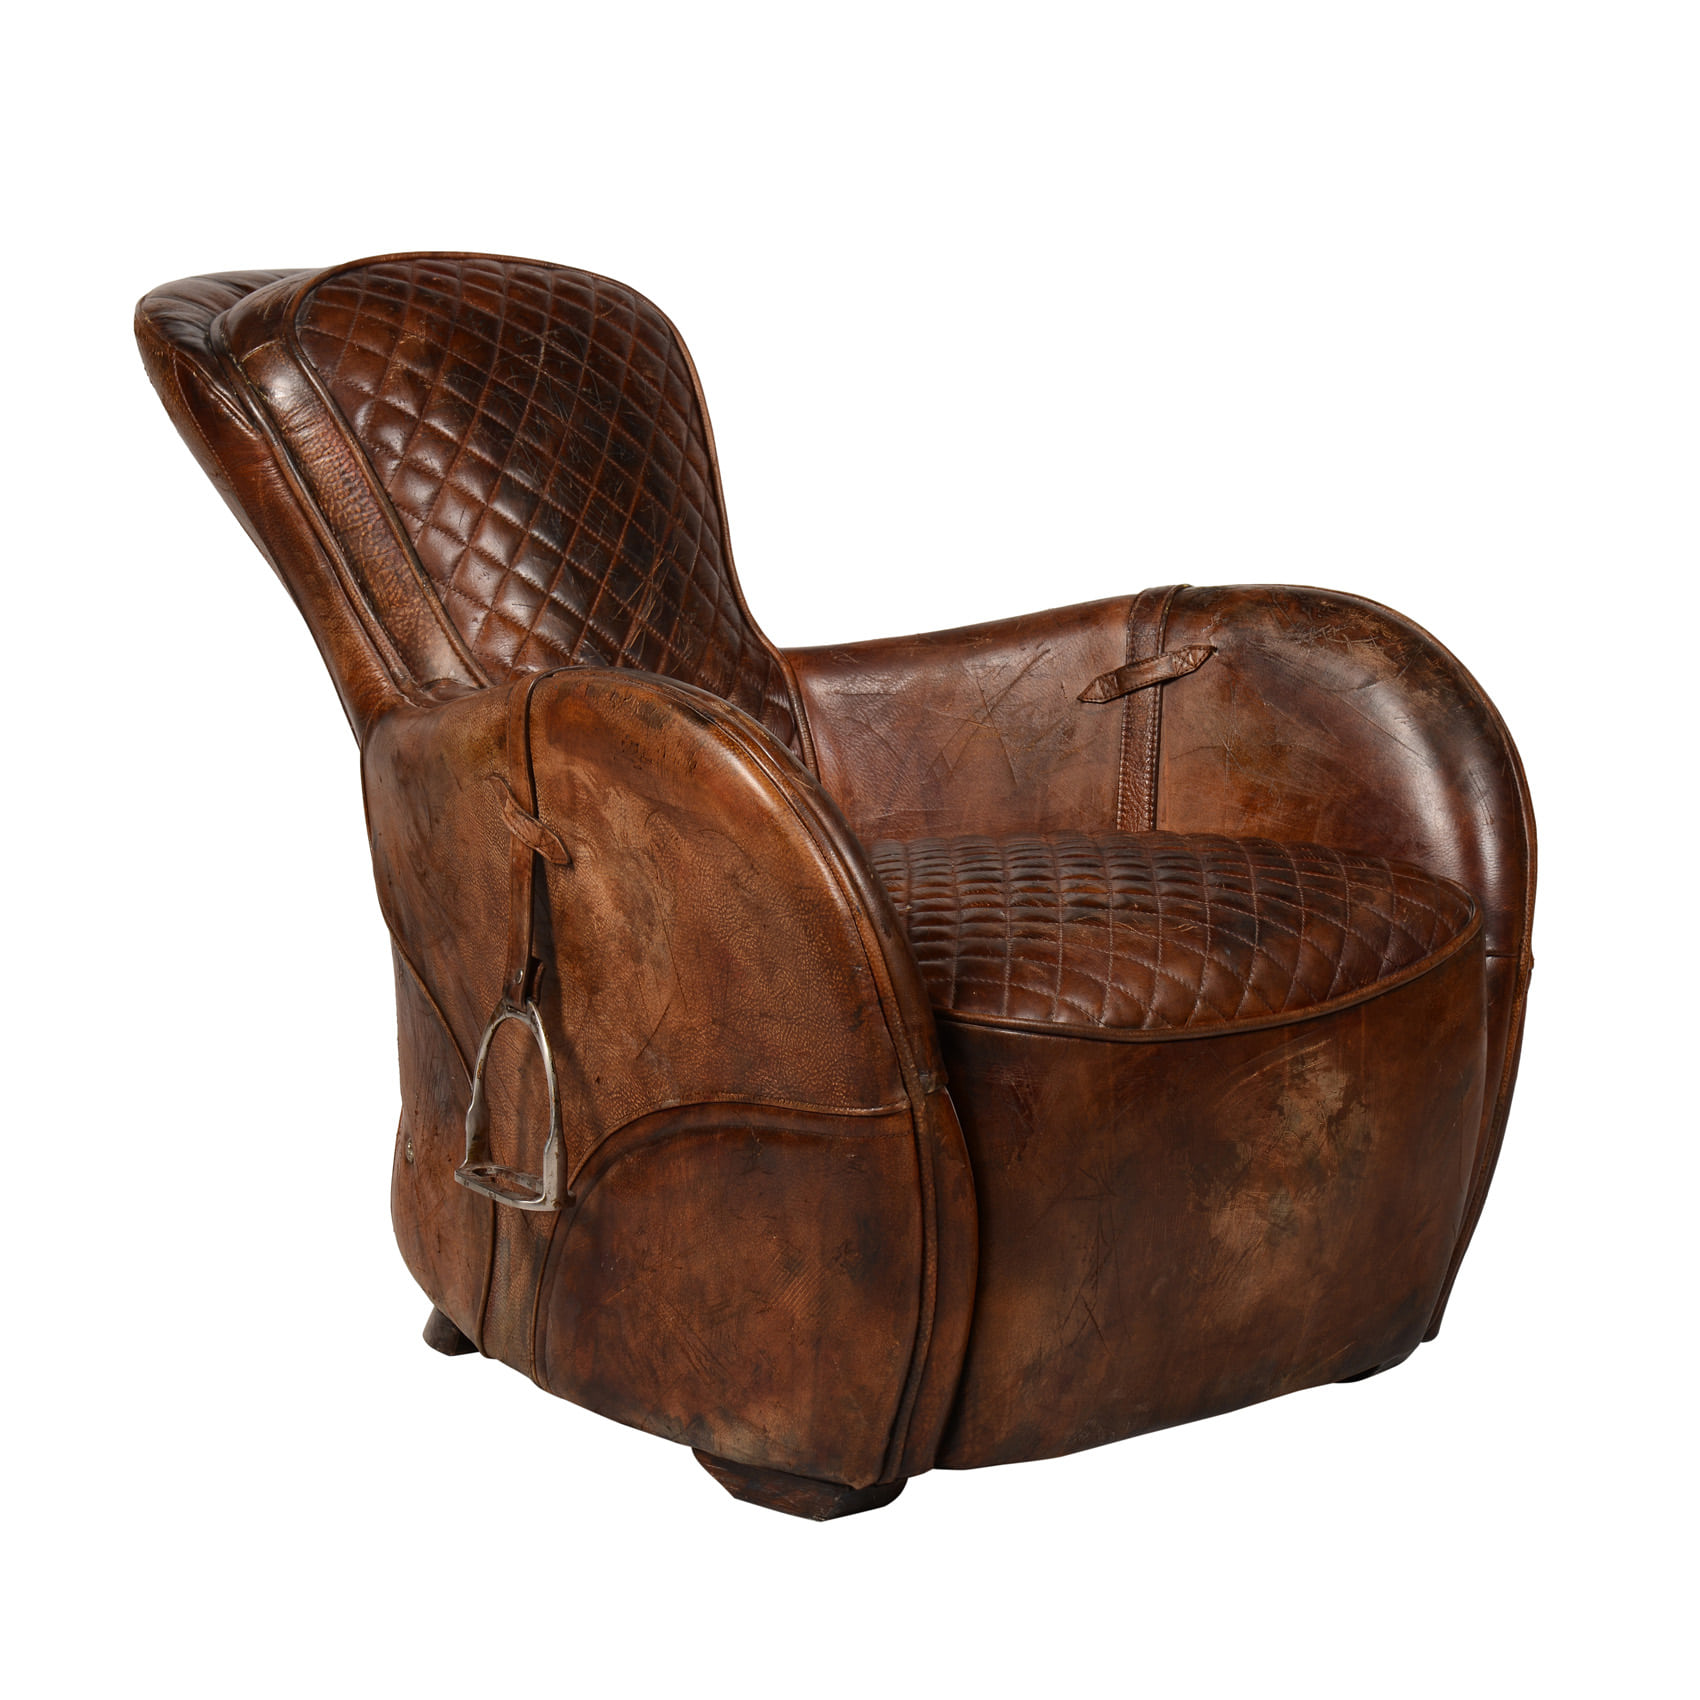 SADDLE CHAIR-BUCKD N BROKN